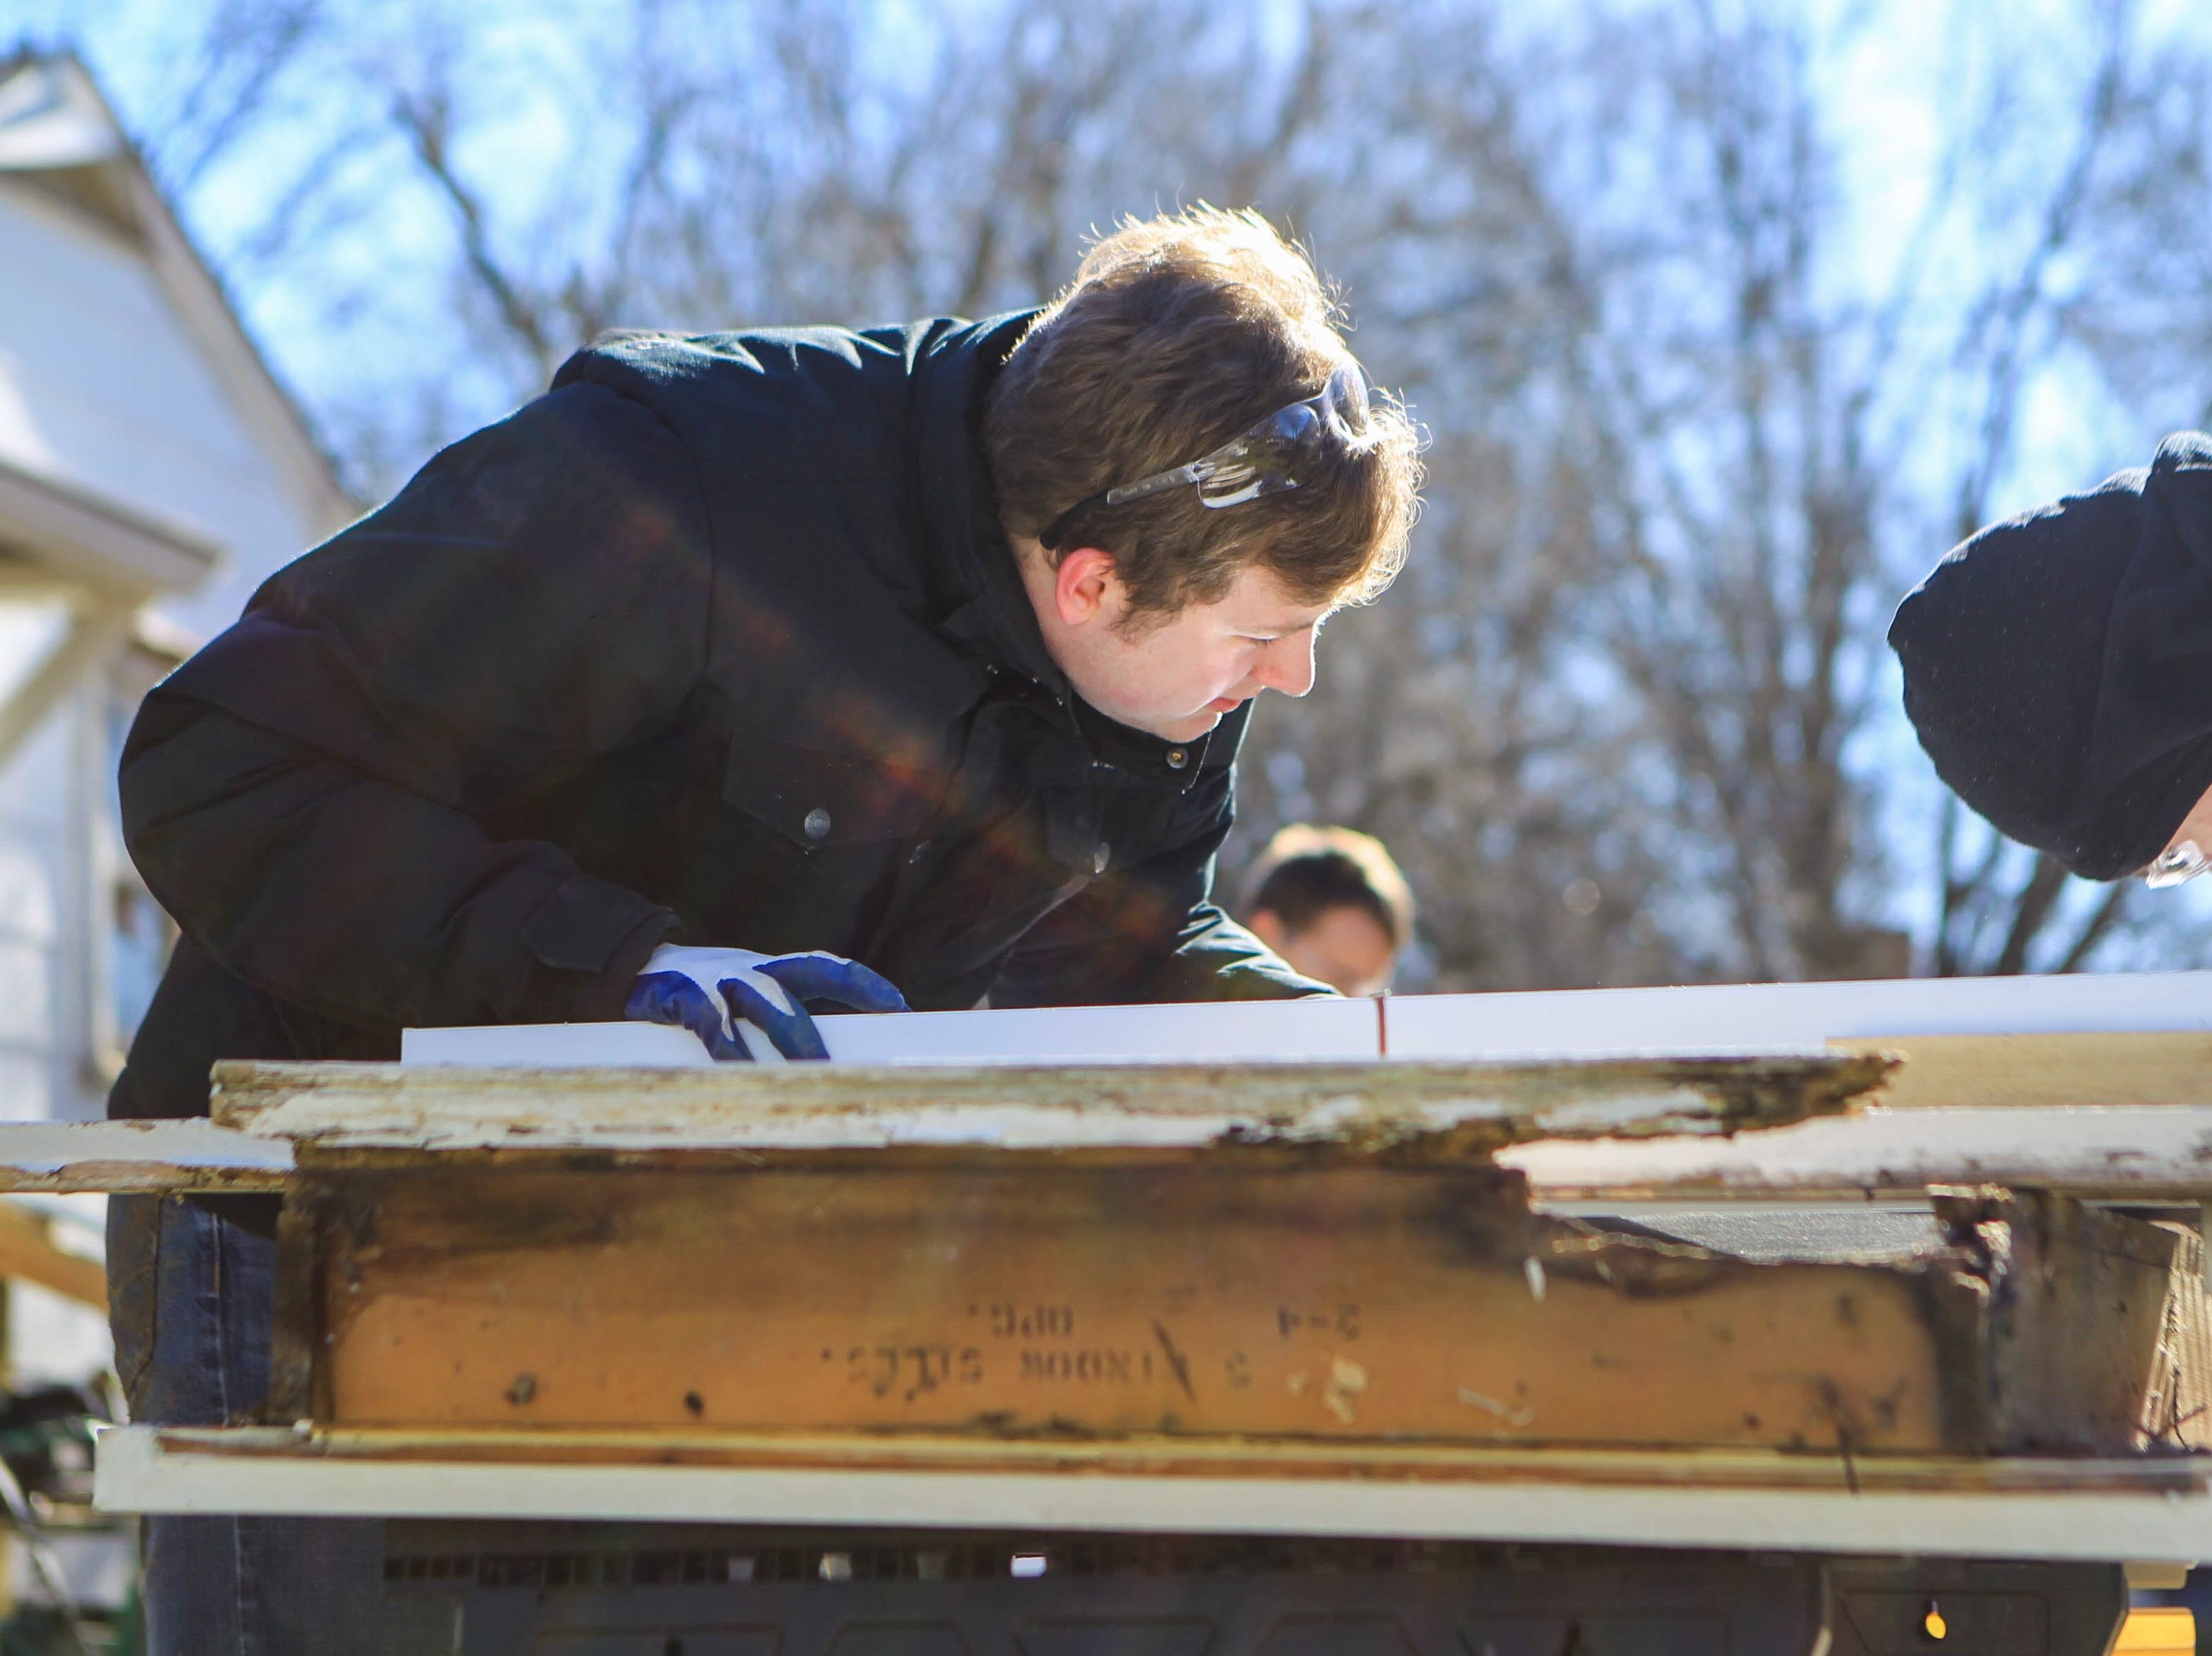 Bob Jones University's Micah Baughman, a sophomore, works on a home on Durham Street in Greenville on Martin Luther King, Jr. Day Monday, Jan. 21, 2019.